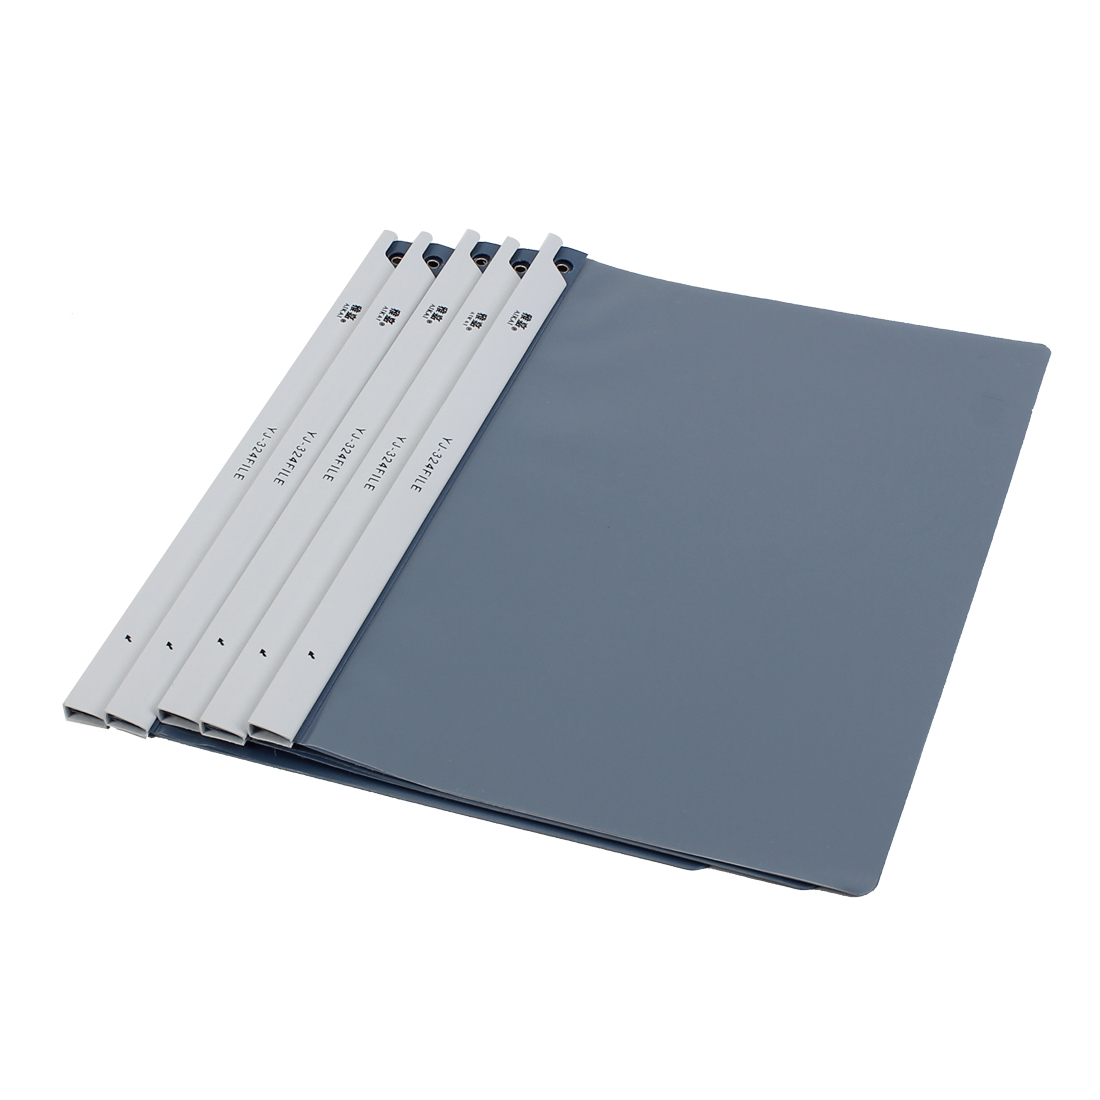 Office School A4 Paper File Document Case Conference Folder Organizer Blue Clear 5pcs